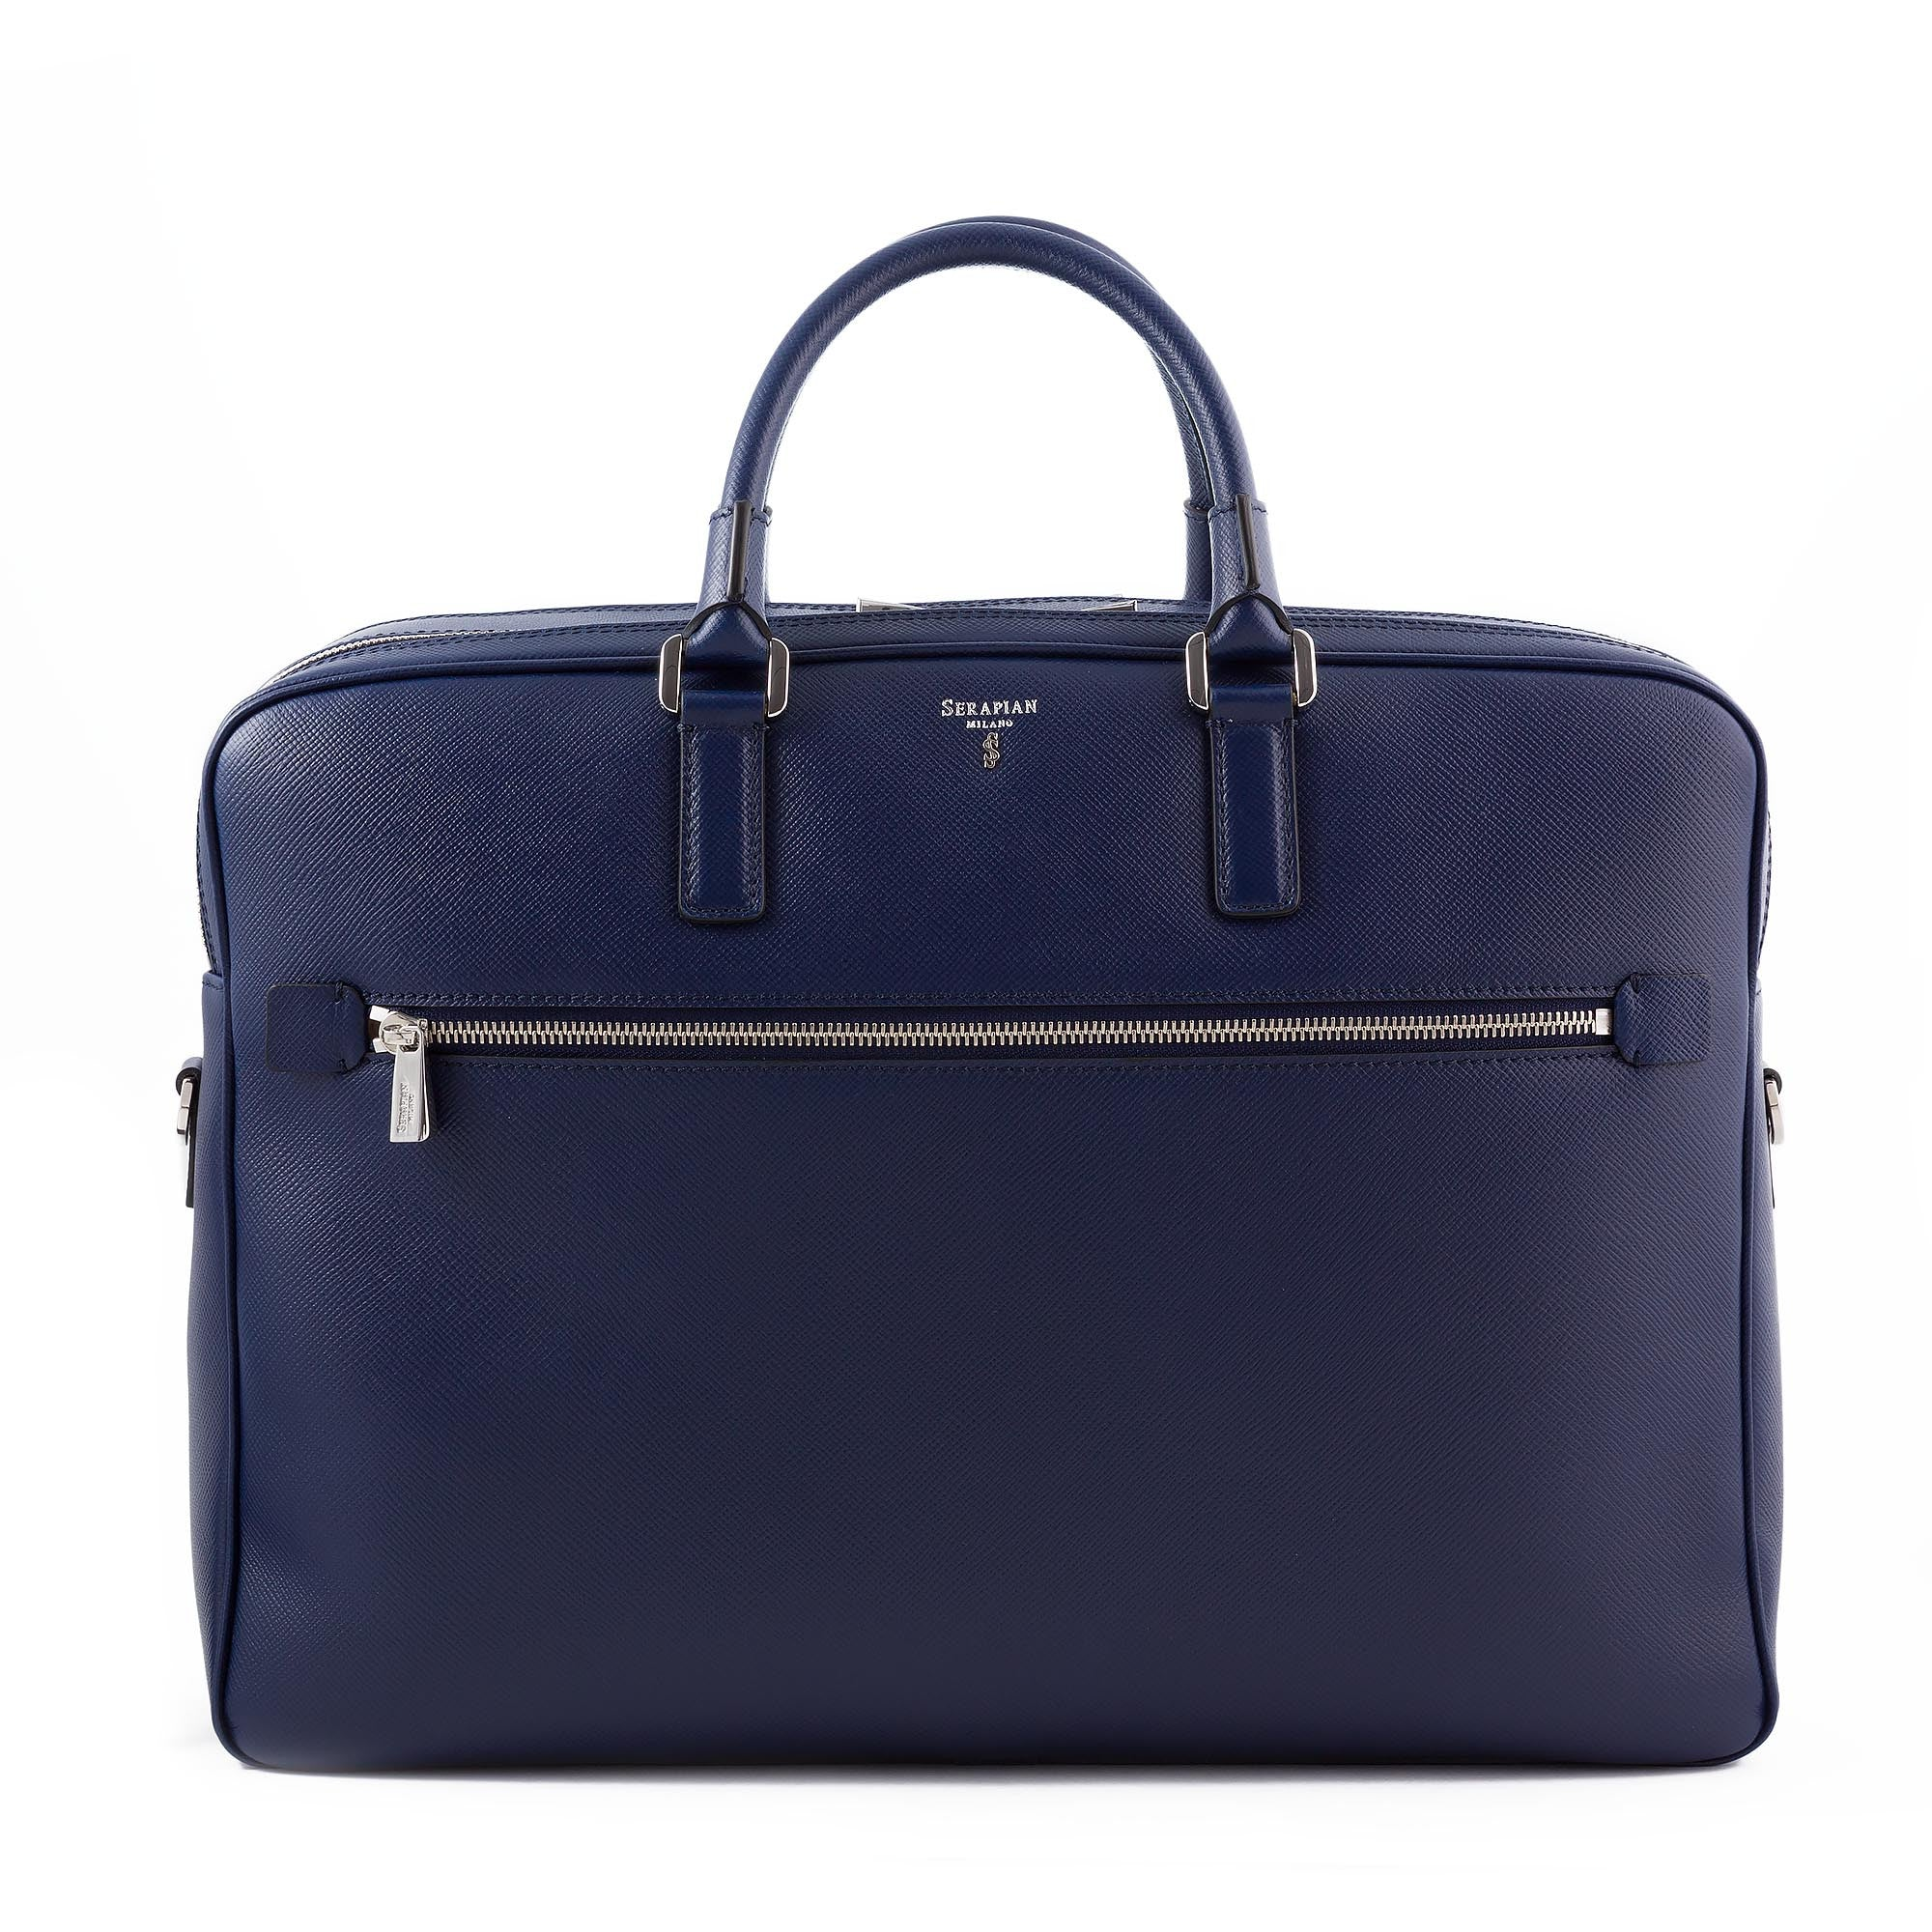 "double briefcase in scratch and water resistant evolution leather. Lined inside with a microfiber suede, two compartments that hold papers, books and a laptop up to 15"". Attachable shoulder strap with attached strap on back to fit easily on to a wheel trolley. New klein blue color with silver hardware"